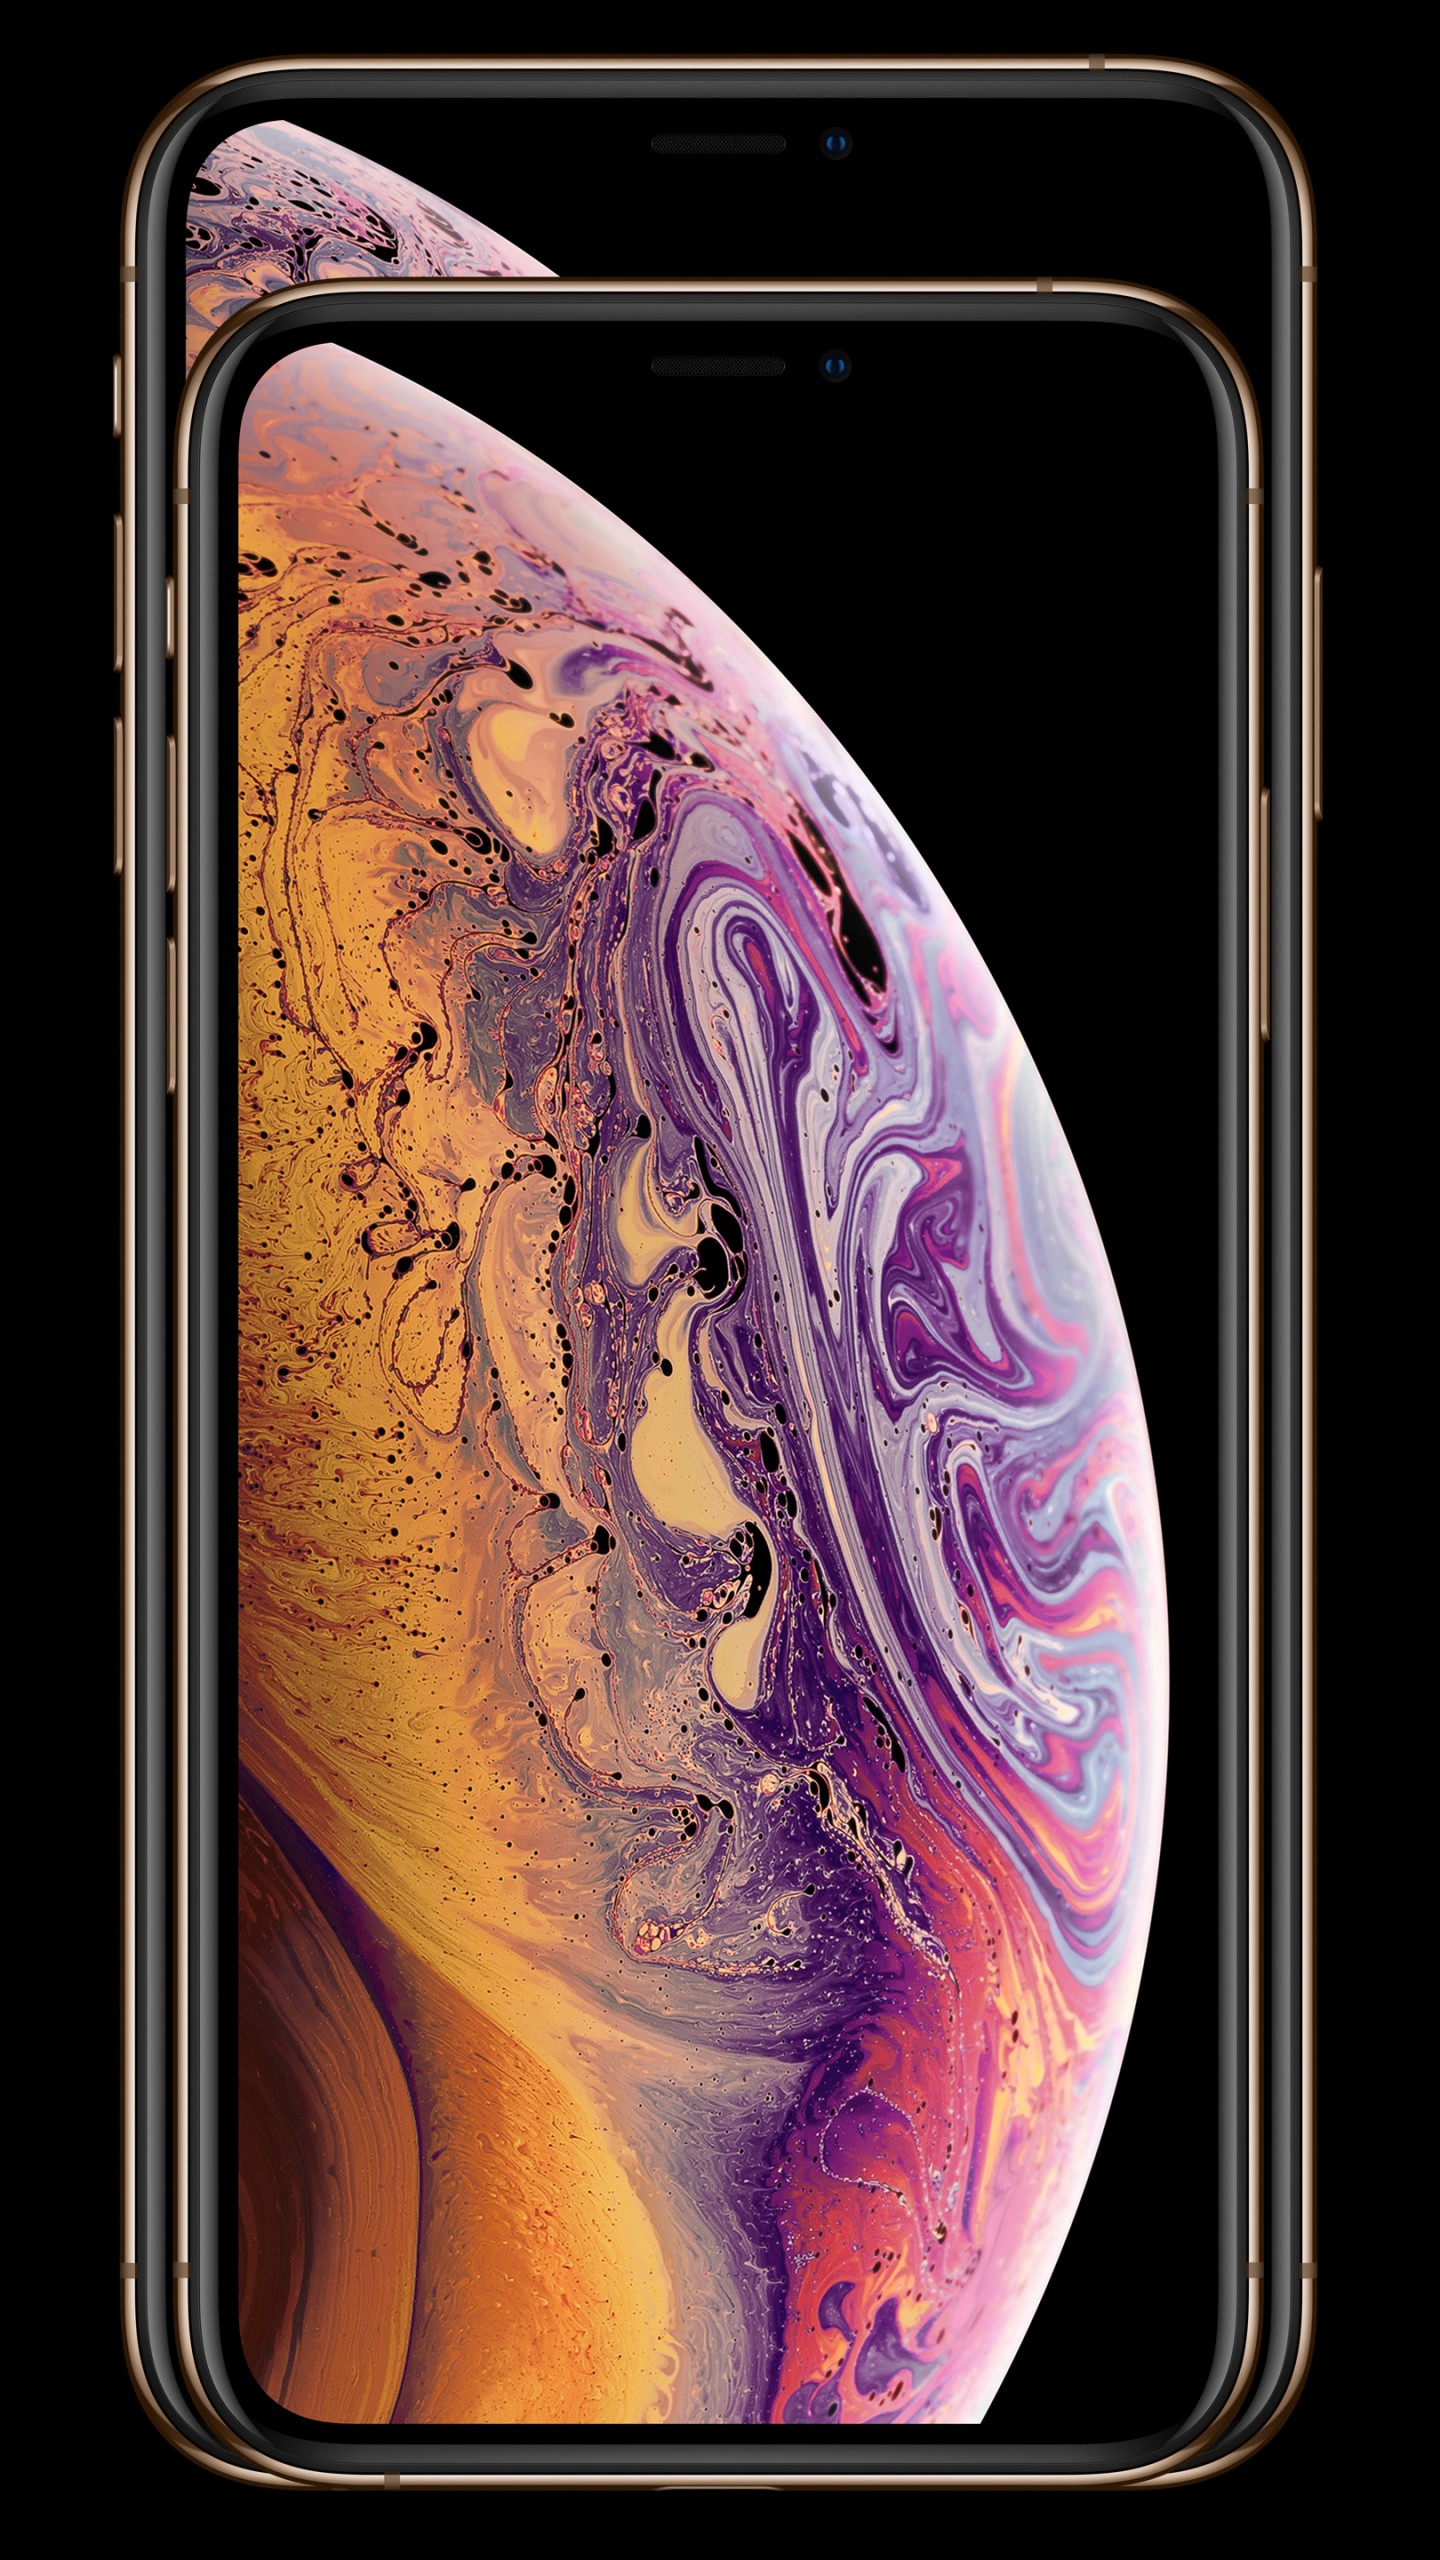 Ios 12 Wallpaper For Iphone X Wallpaper Iphone Xs Iphone Xs Max Gold Smartphone 5k